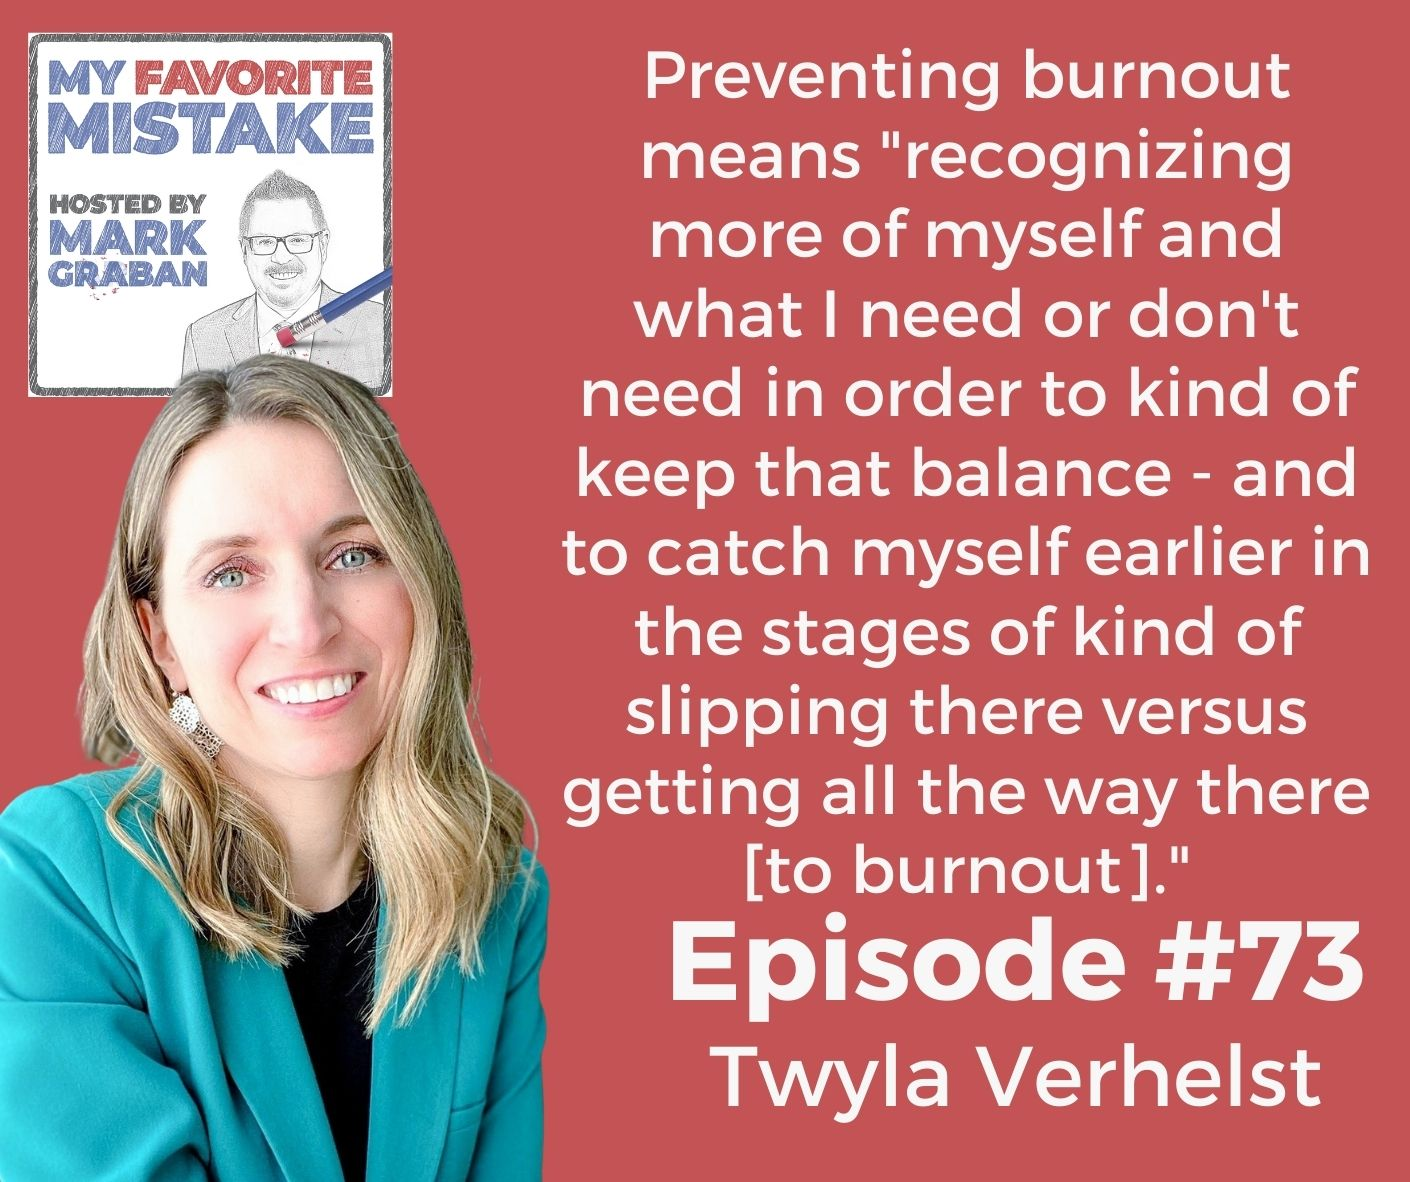 """Preventing burnout means """"recognizing more of myself and what I need or don't need in order to kind of keep that balance - and to catch myself earlier in the stages of kind of slipping there versus getting all the way there [to burnout]."""""""